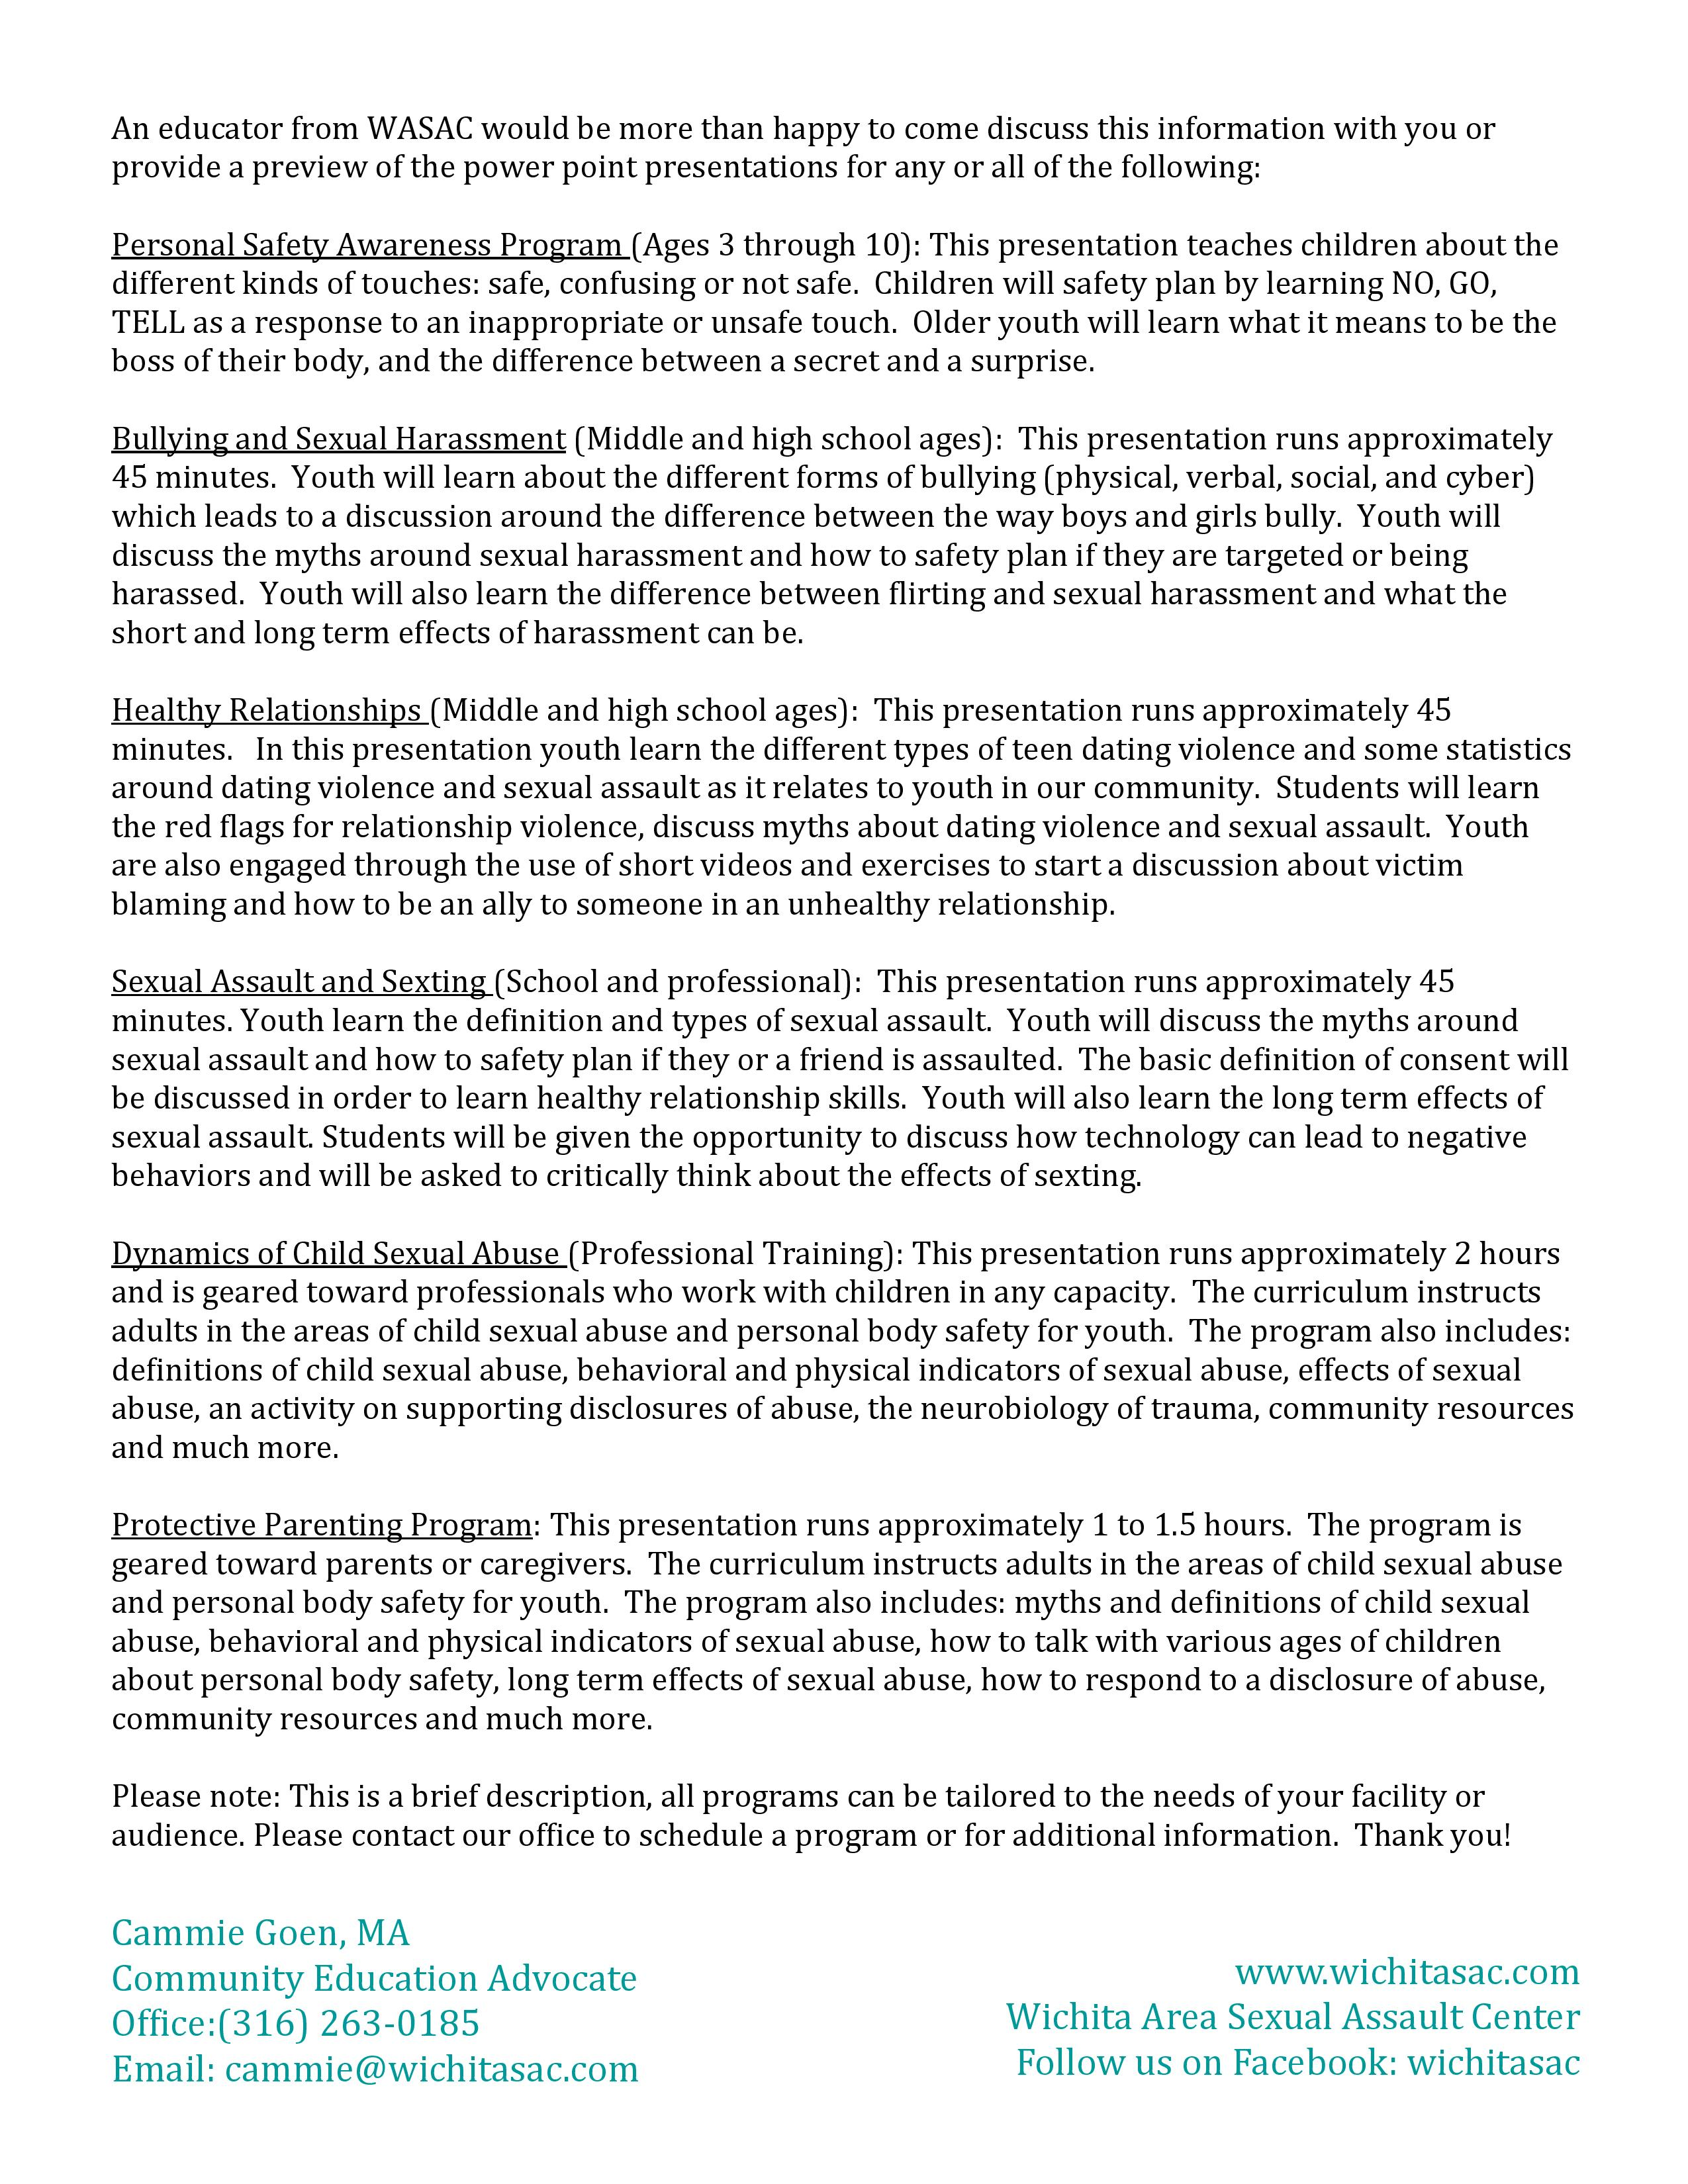 WASAC Educational Programs August 2019-page-002 (1)